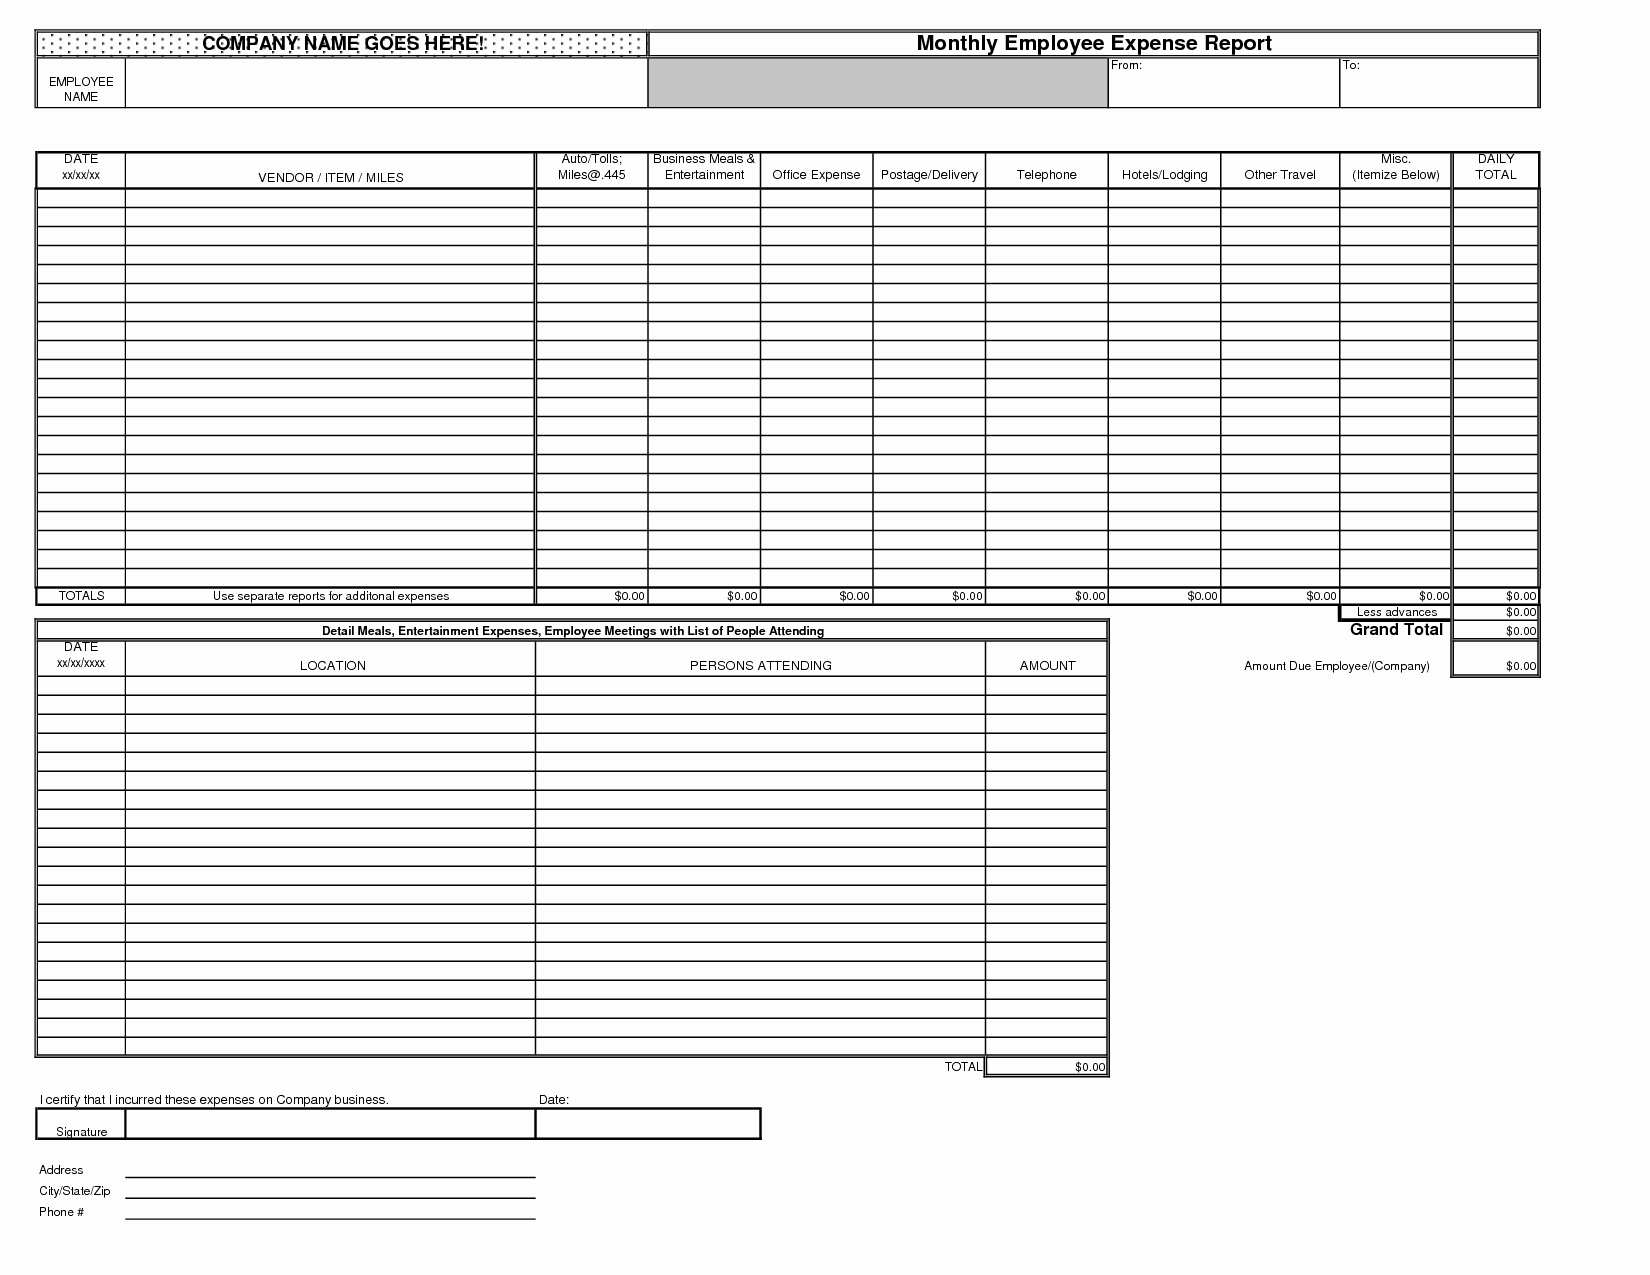 Personal Monthly Expense Report Template Elegant Best S Of Monthly In E Expense Report Template